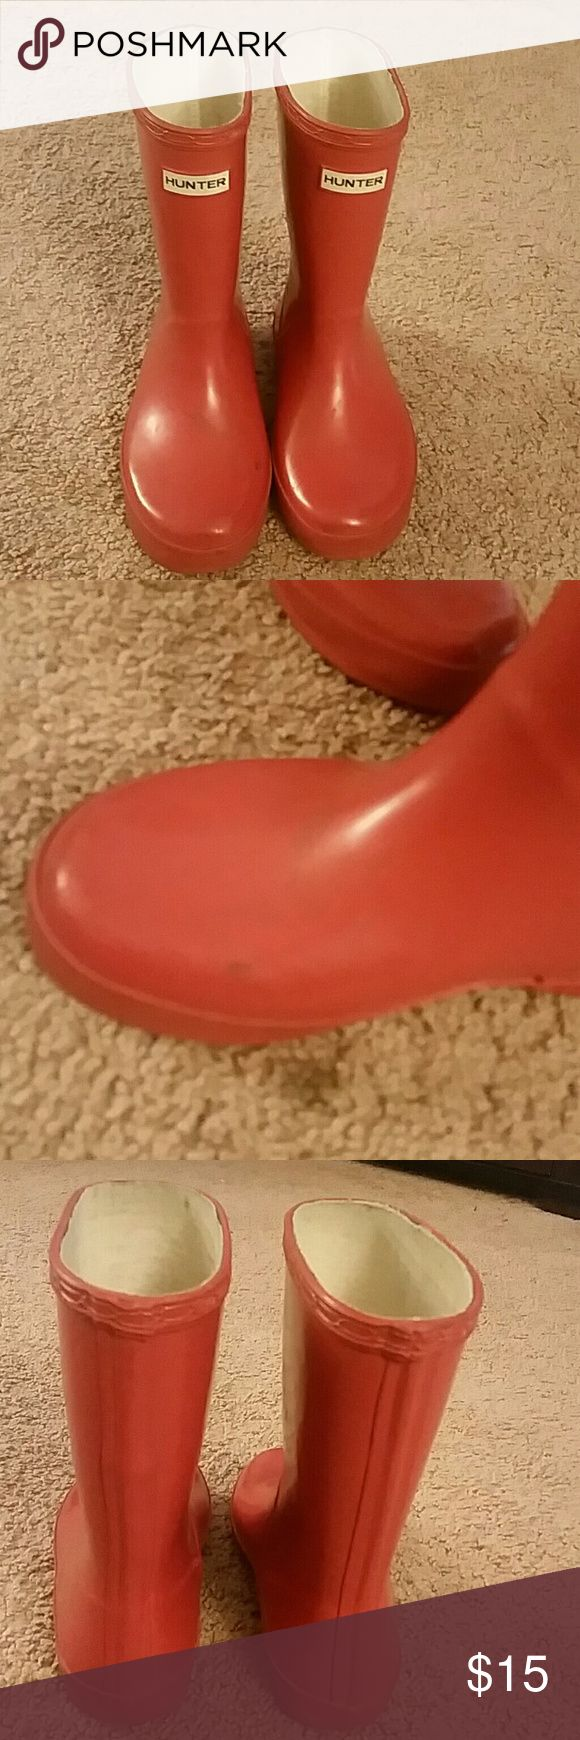 Unisex Kids Hunter Rain Boots Red Hunter Boots. Does have some wear on the bottom of the sole near the back of the heel as seen in pics. Some scuffs on the boot as in pics also. My daughter wrote them for a good winter. Lower price because of the wear on the heel so now is a steal. Hunter Boots Shoes Rain & Snow Boots